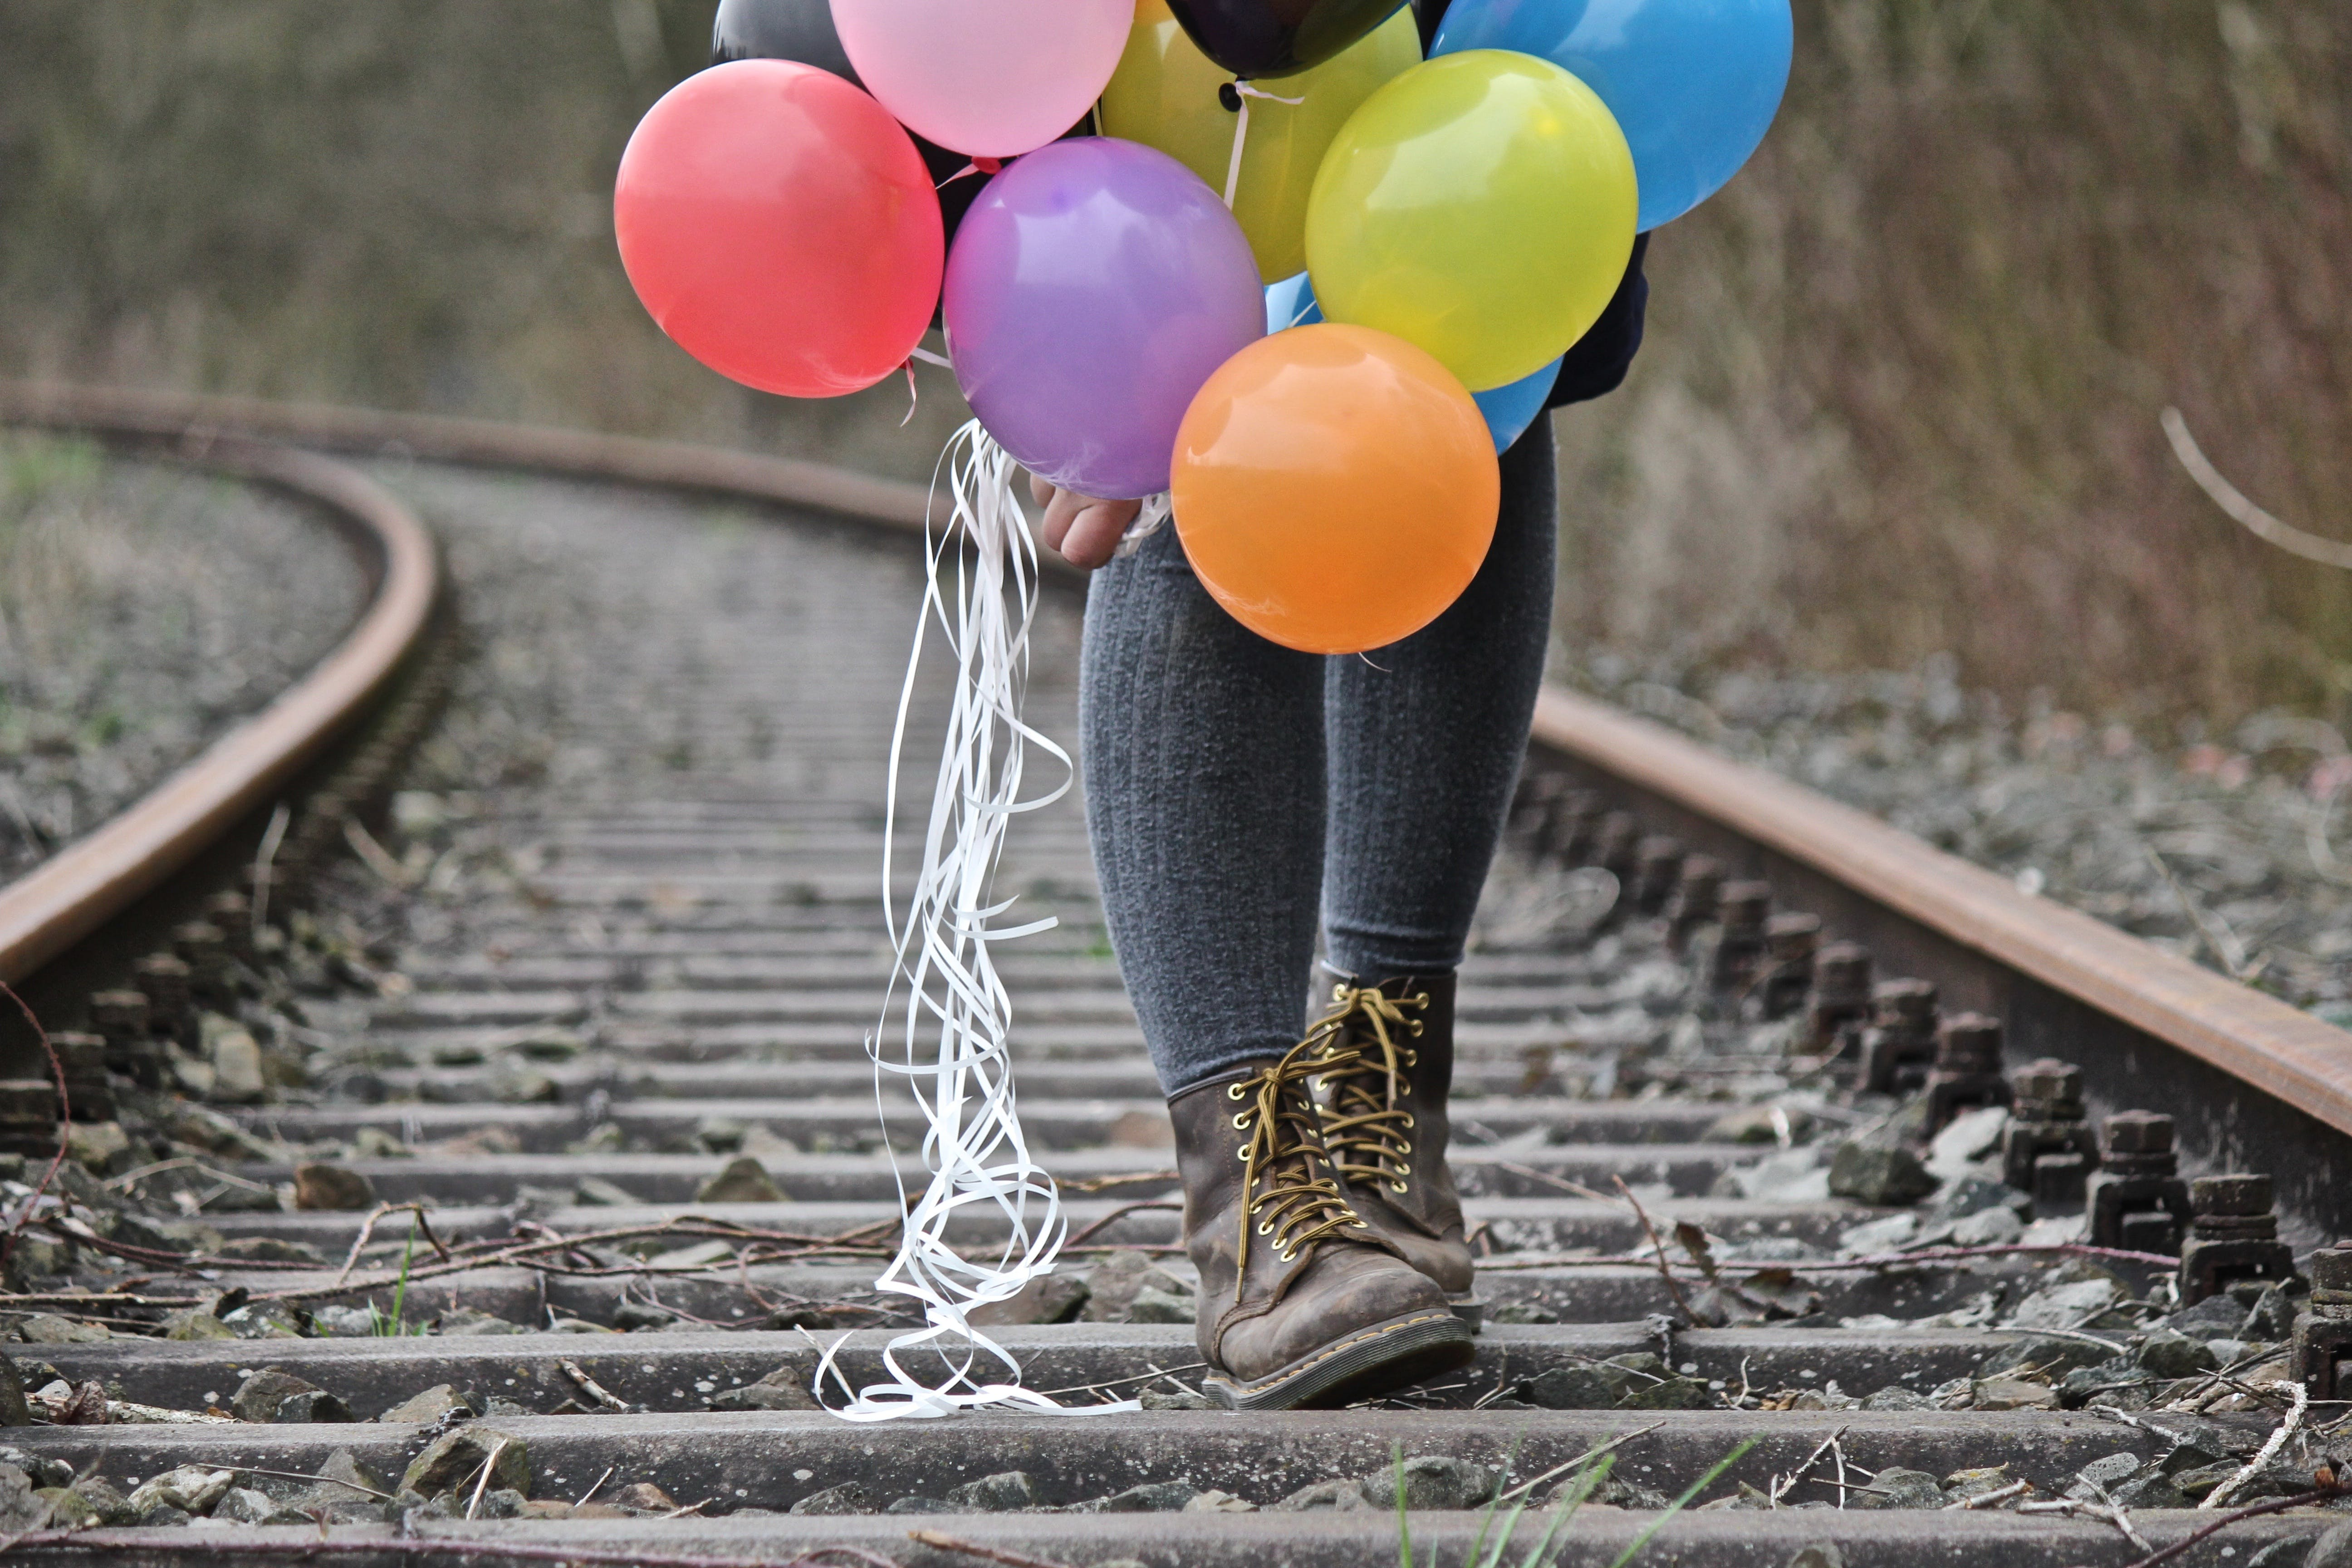 Person Walking on Train Track Holding Balloon